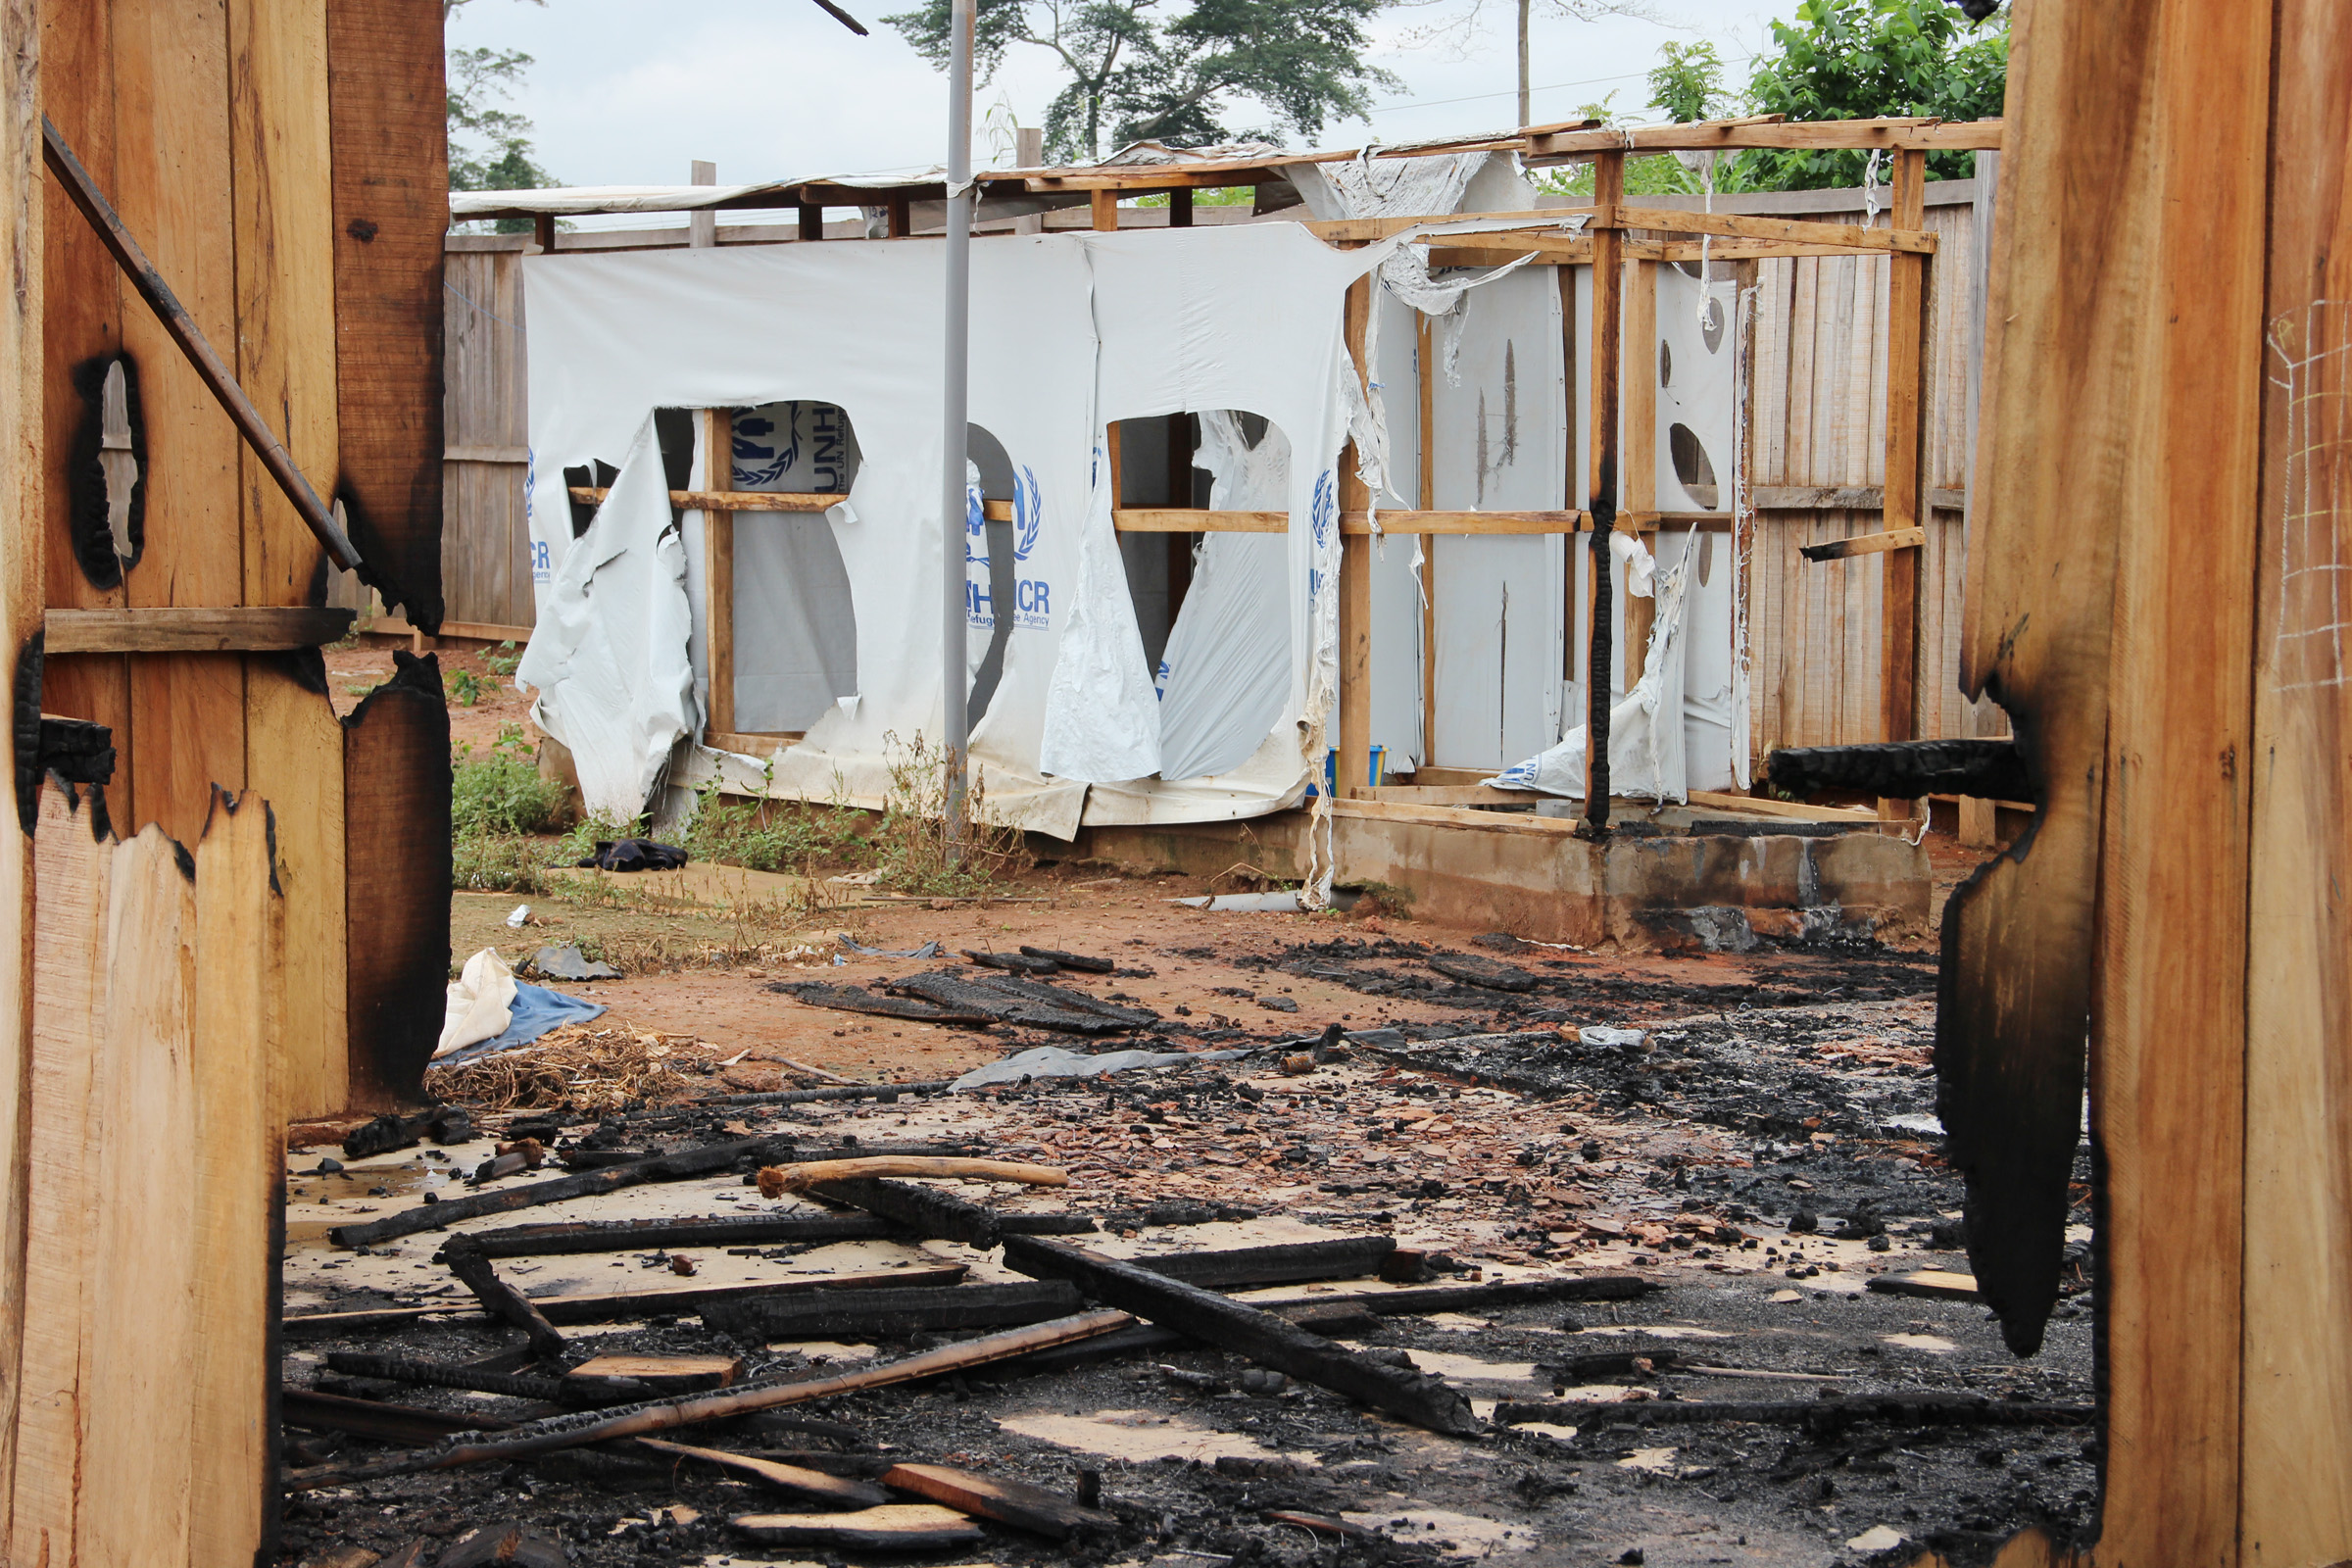 Nahibly IDP camp, Côte d'Ivoire's last remaining refuge for the displaced in the volatile western region was raided and torched on 20 July by a huge crowd, sending the more than 5,000 people there to flee for safety